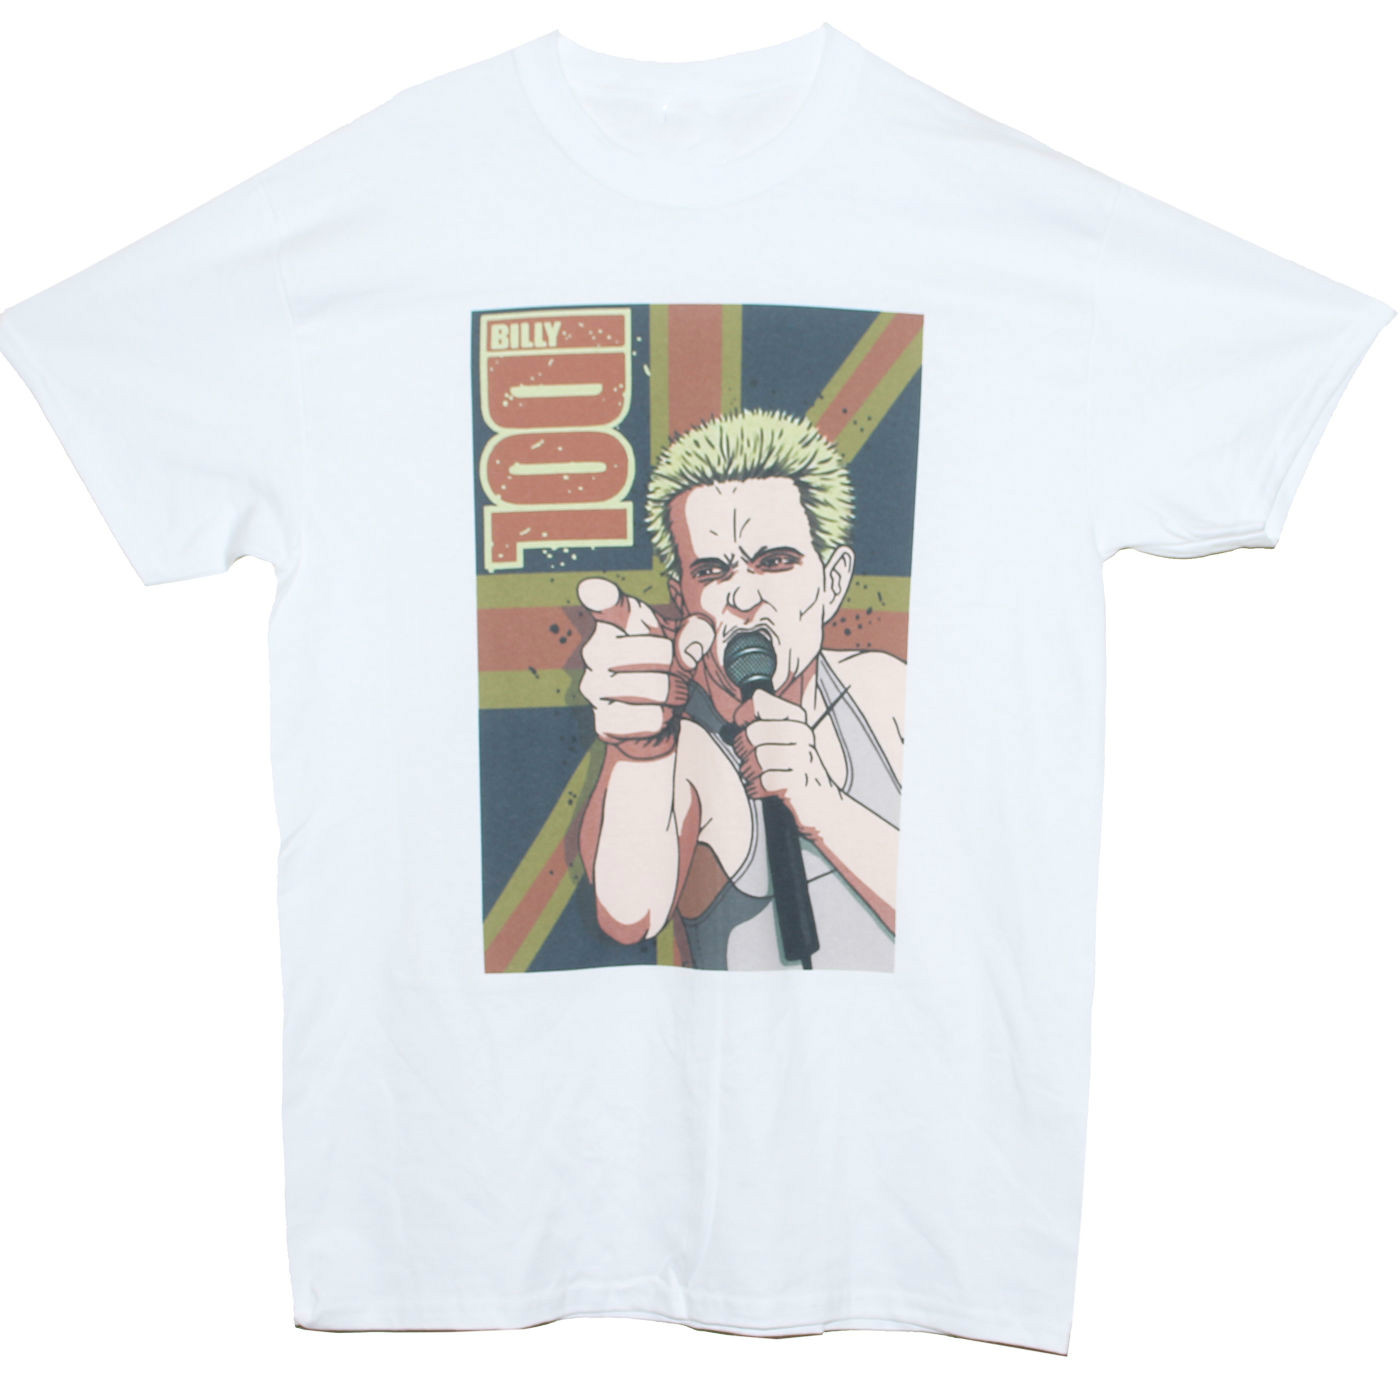 BILLY IDOL T SHIRT Punk Generation X Pil Graphic Music Band Printed Tee Men/Wome Mens Hipster Short Sleeve Tee Tops